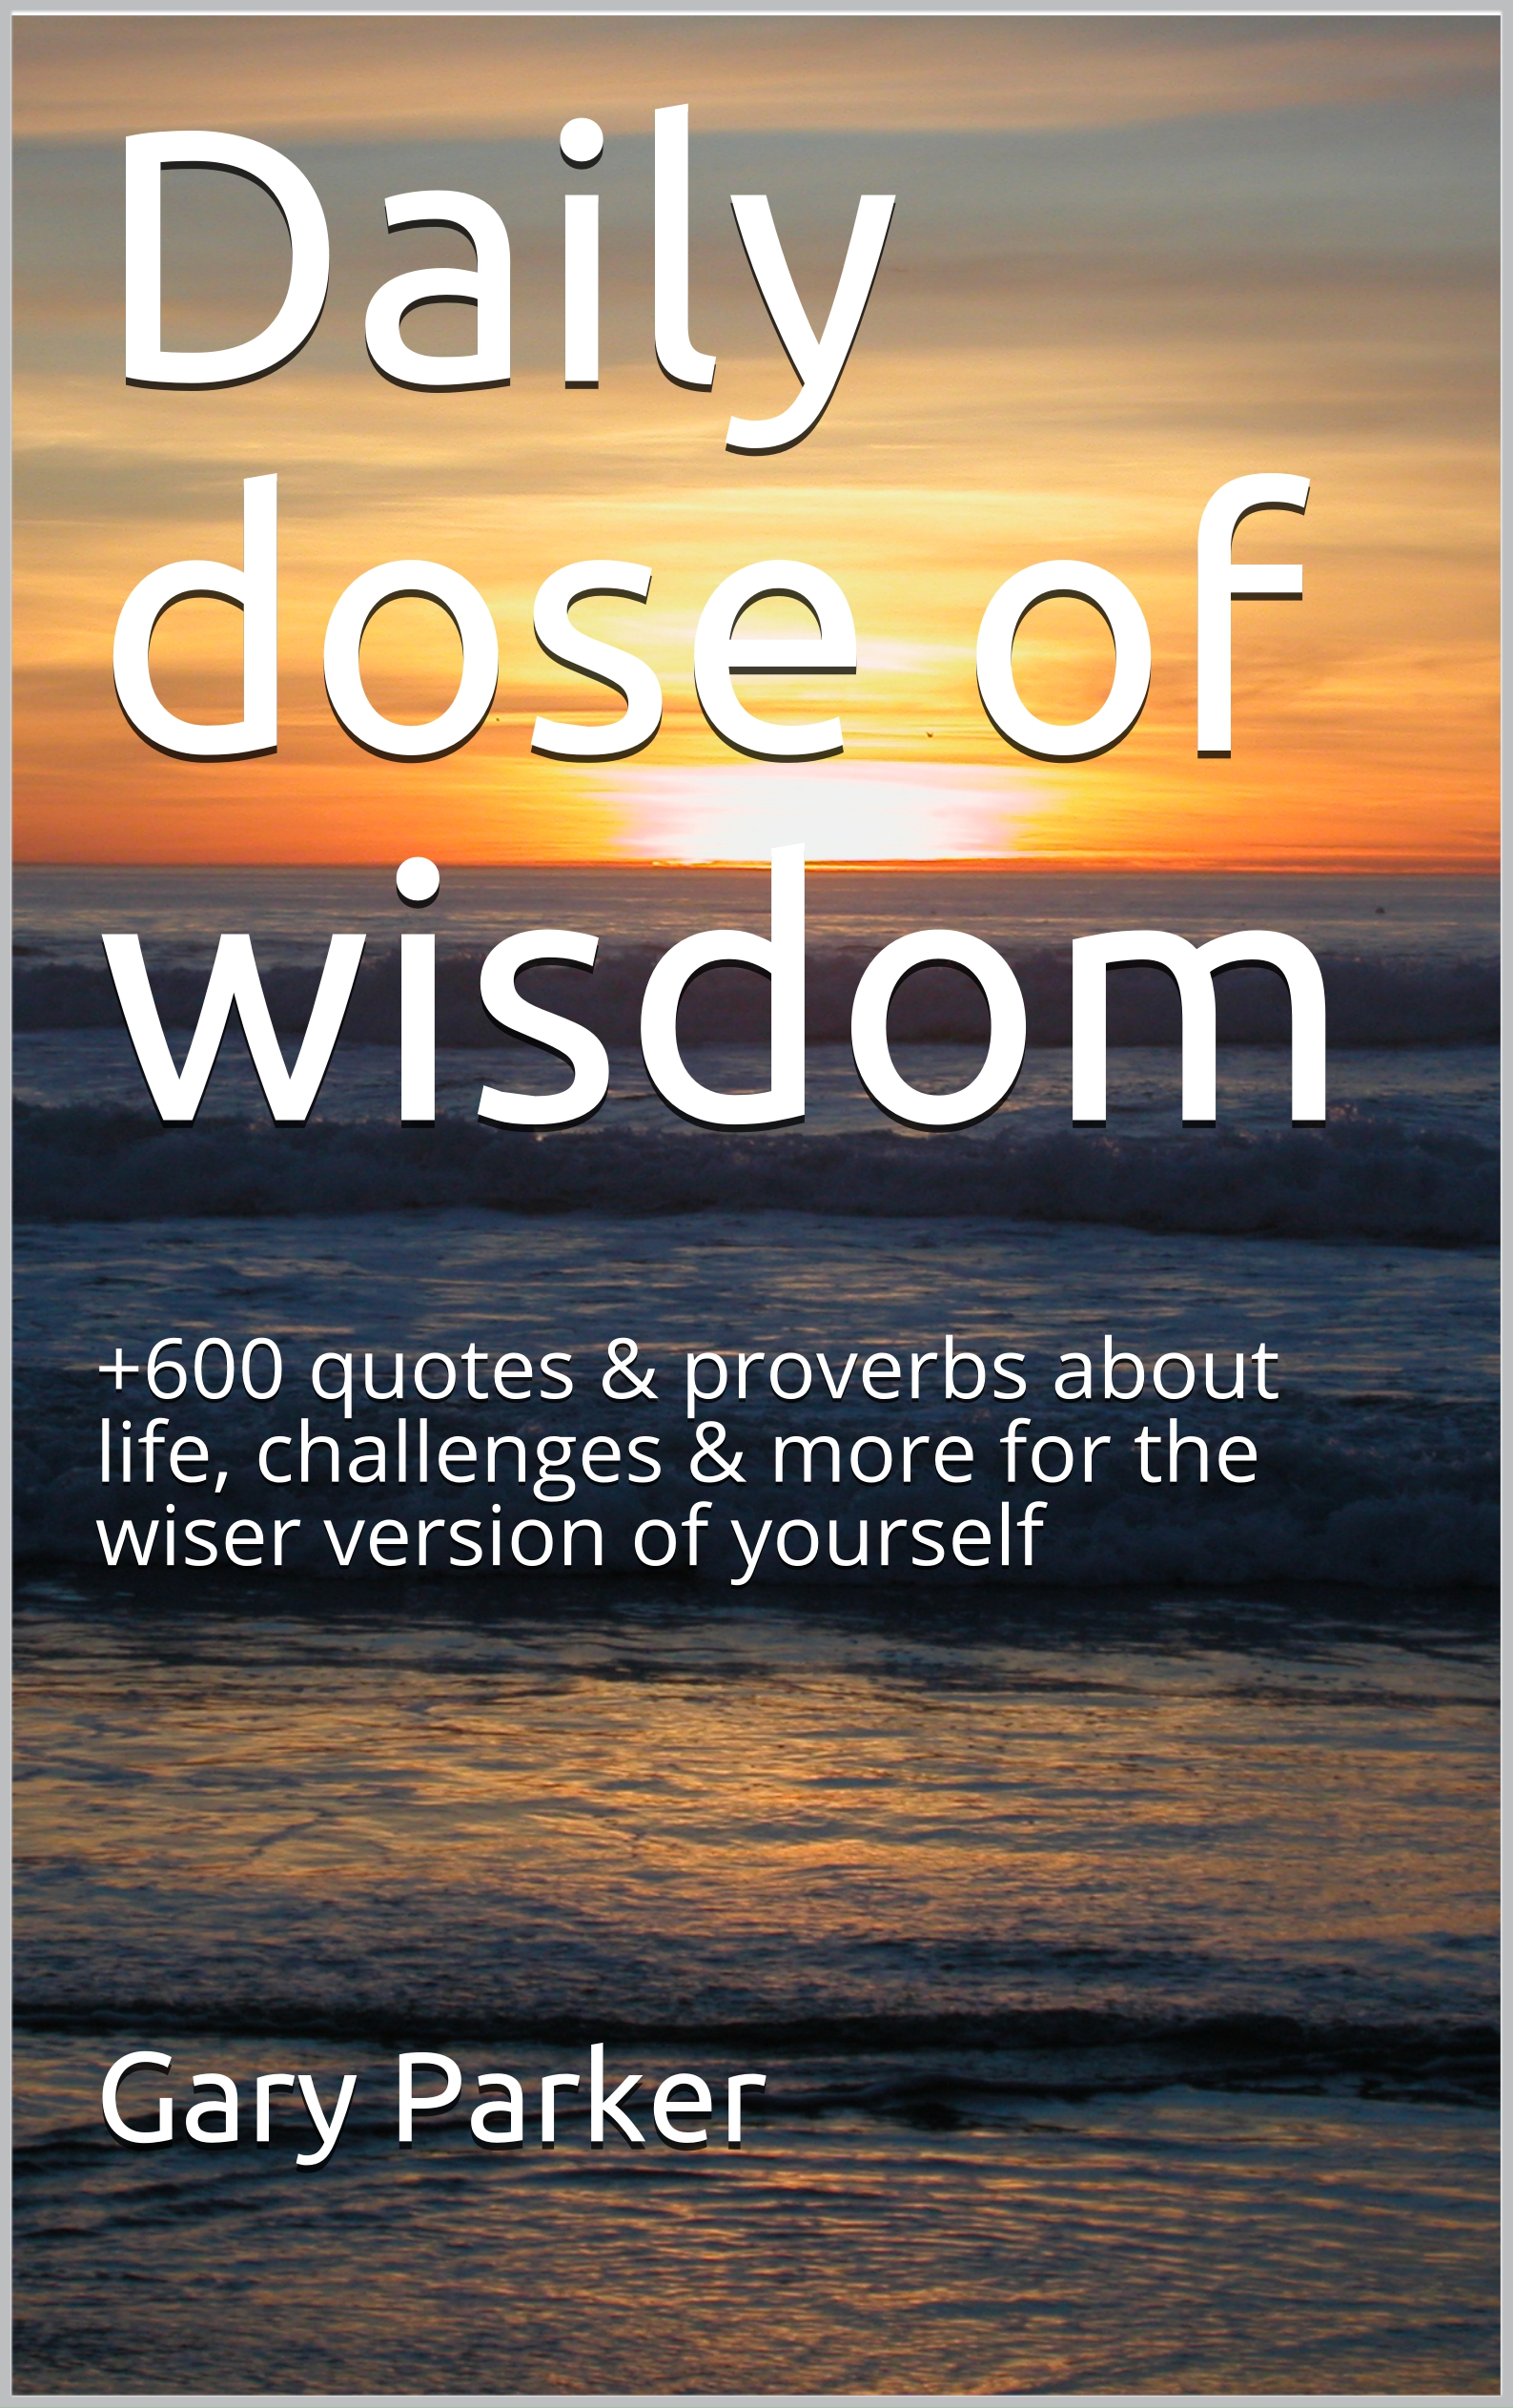 +600 Quotes & Proverbs About Life, Challenges & More For The Wiser Version Of Yourself https://inspirational.ly